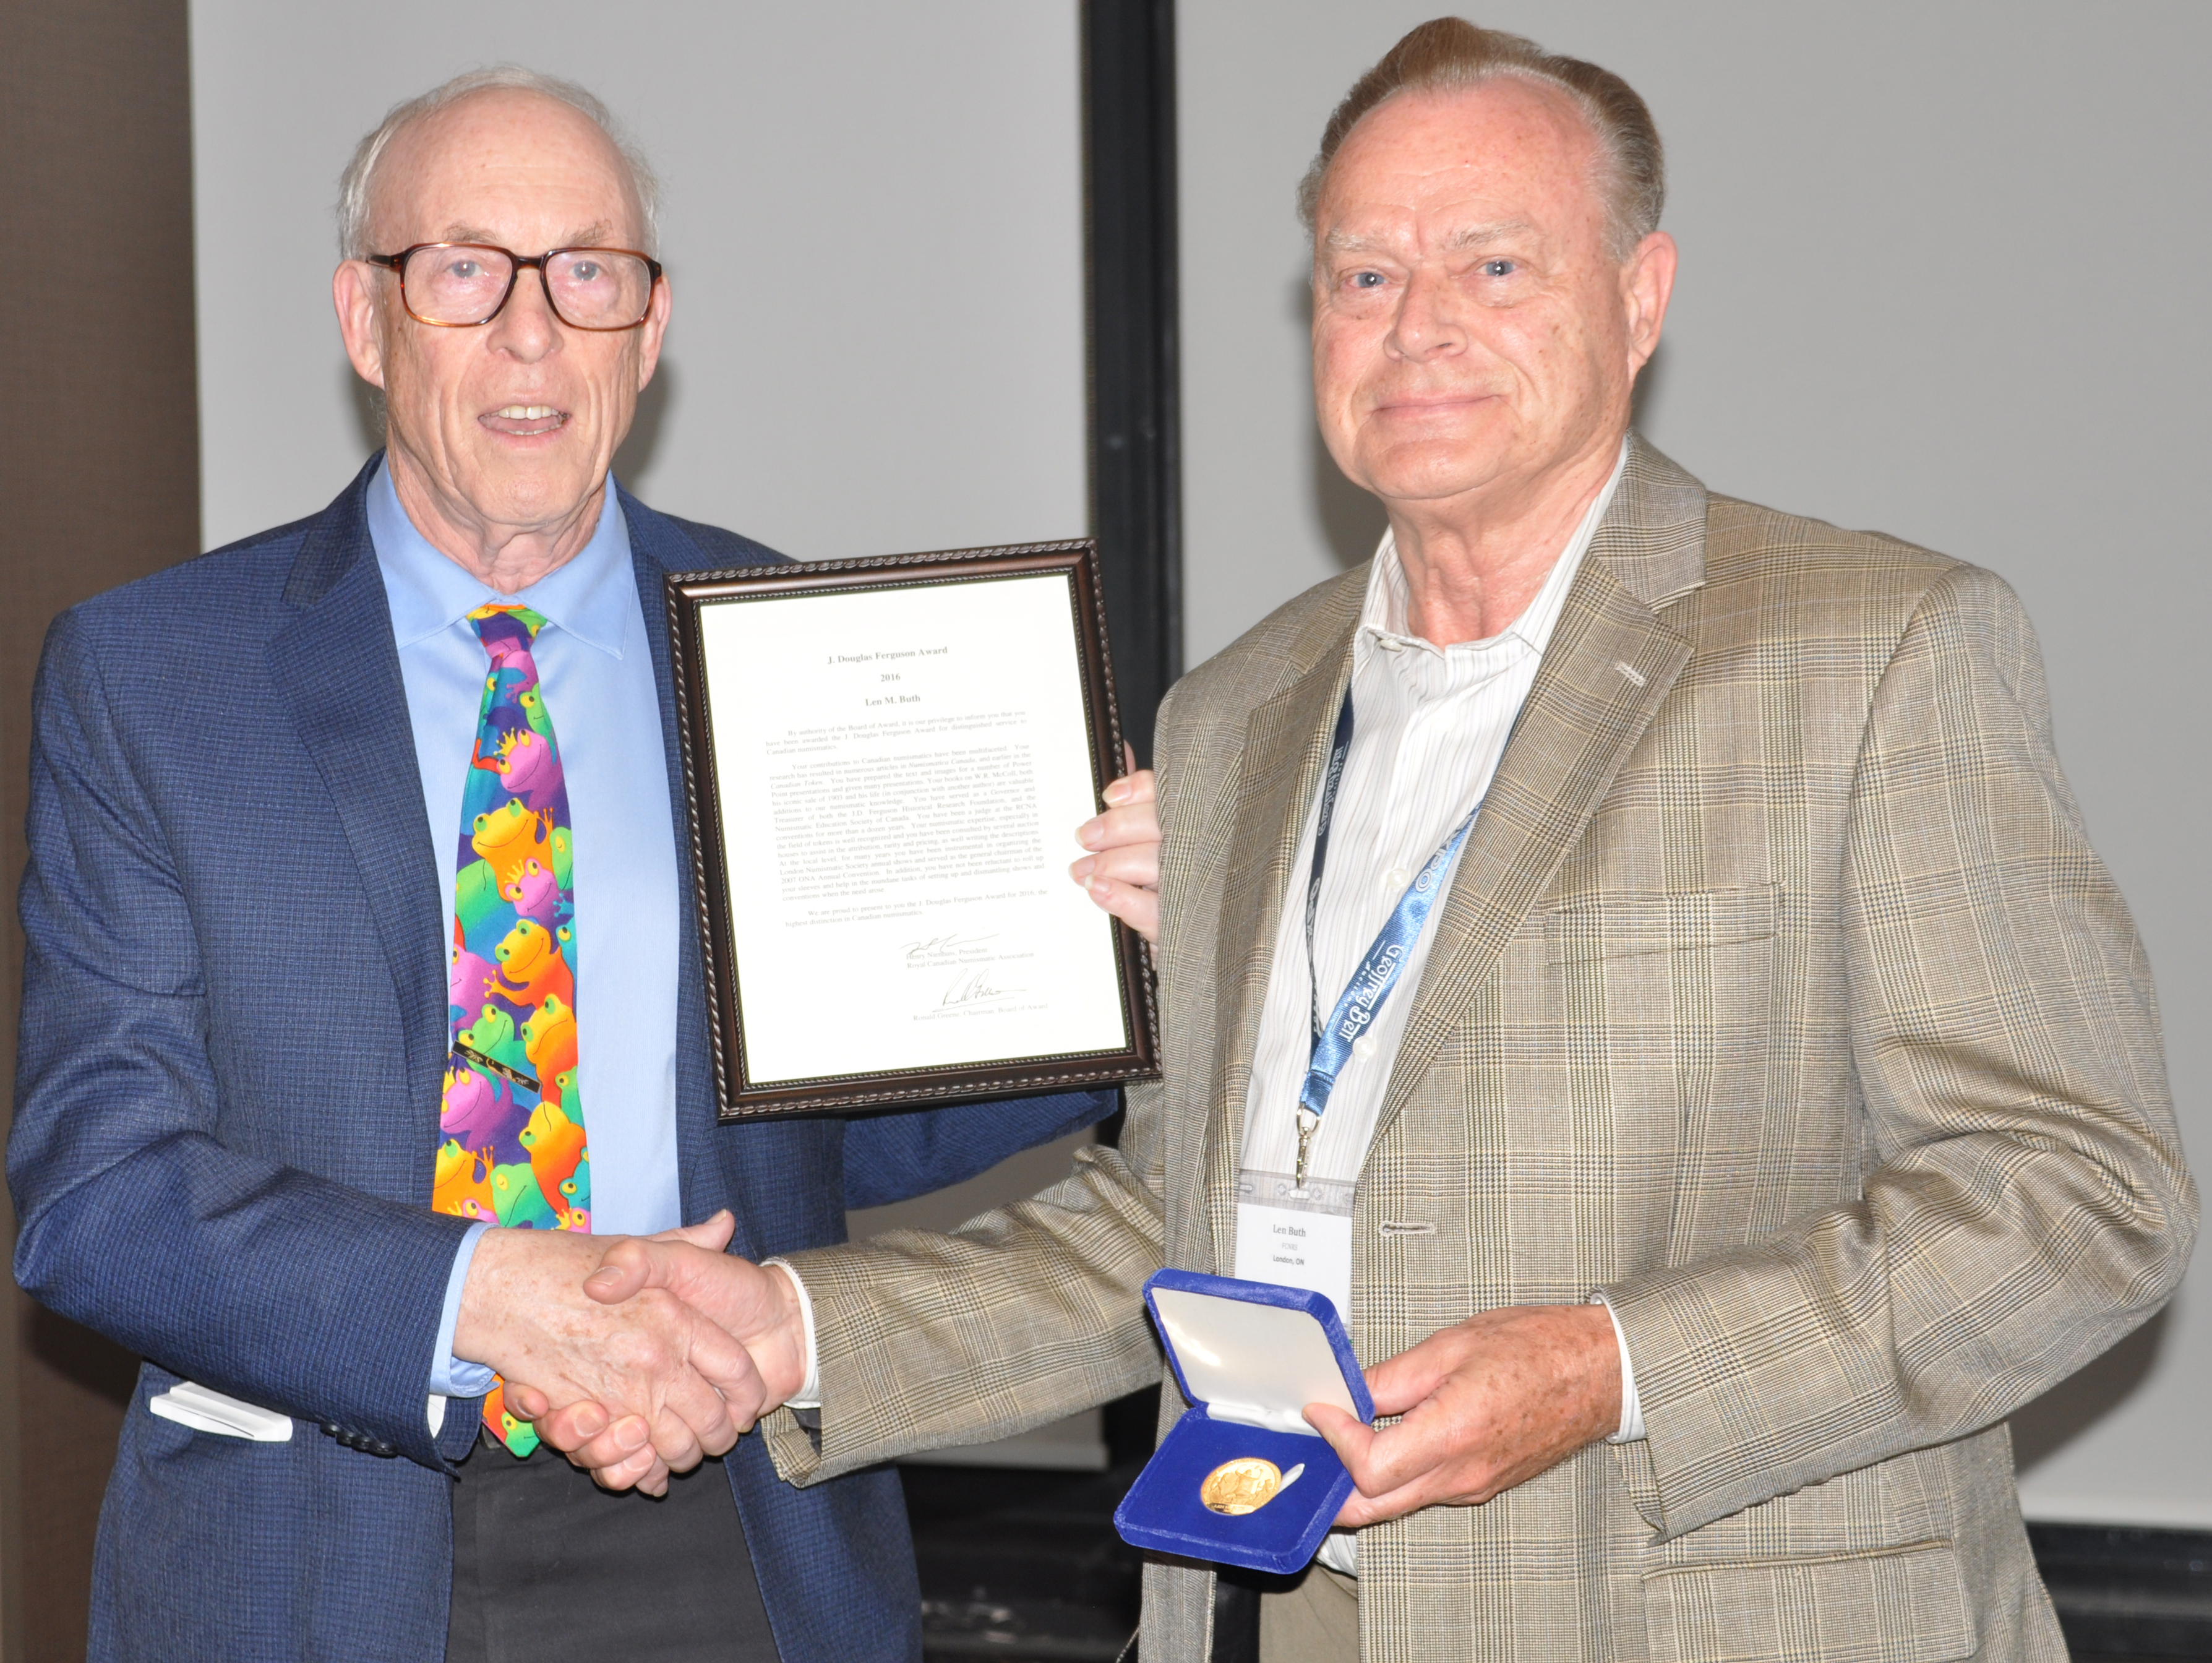 <p><strong>Len Buth</strong> (right) receiving the J. Douglas Ferguson Award from <strong>Ron Greene</strong> (left).</p>